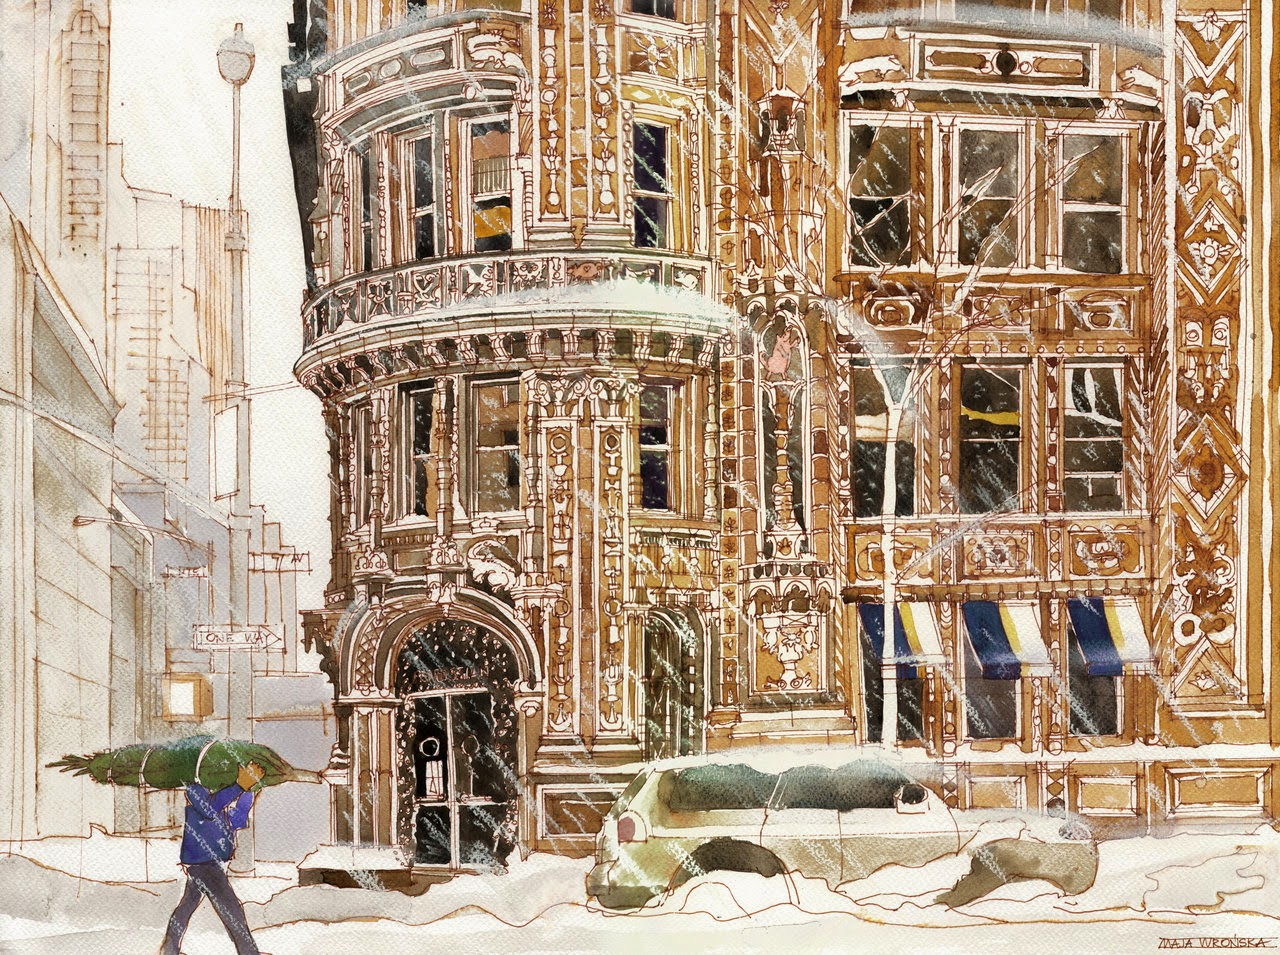 30-Winter-in-NYC-Maja-Wronska-Travels-Architecture-Paintings-www-designstack-co